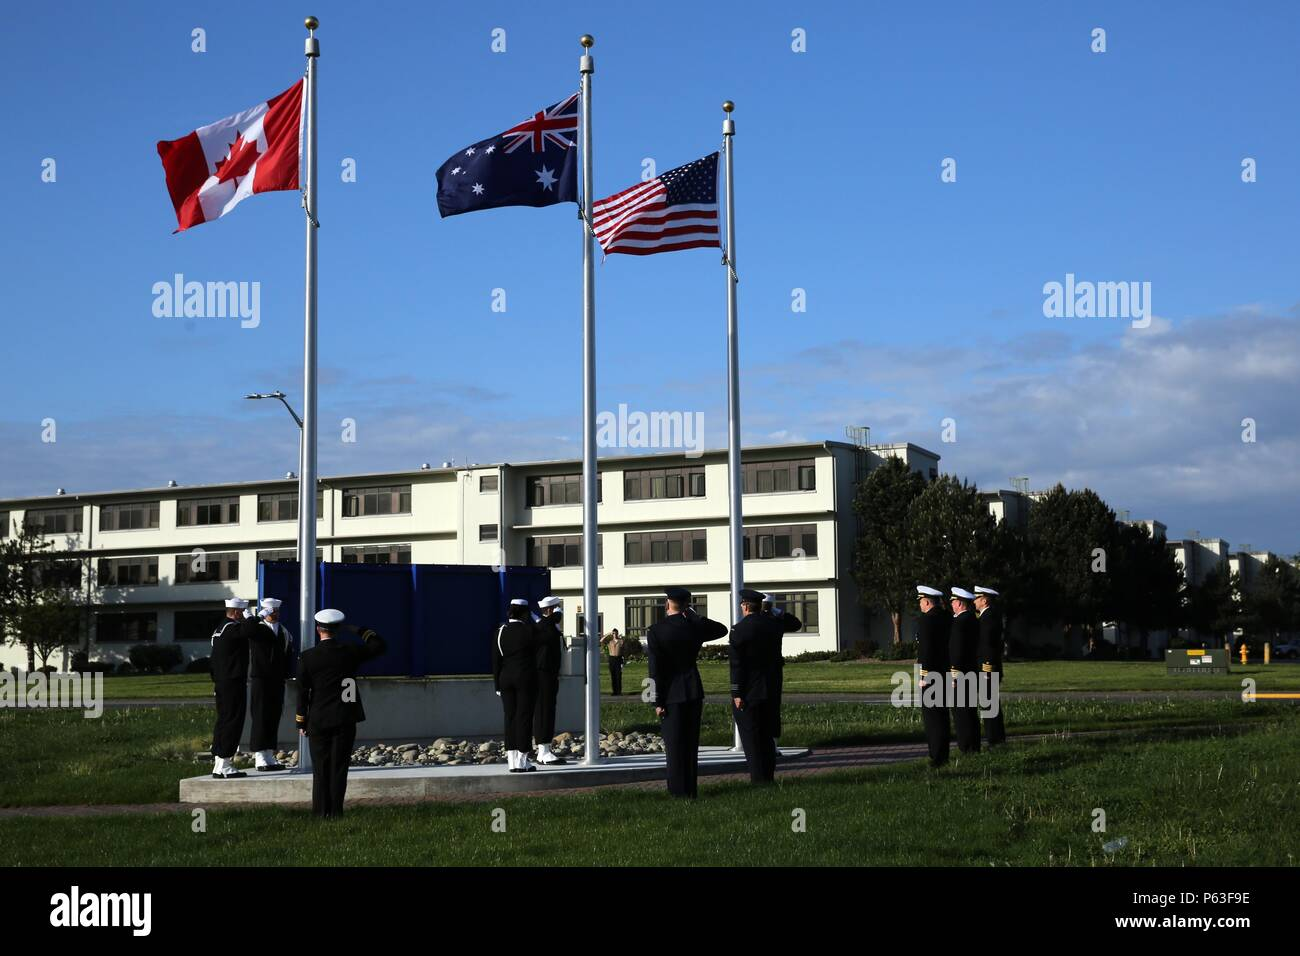 160425-N-DC740-042 OAK HARBOR, Wash. (April 25, 2016) Sailors from Naval Air Station Whidbey Island (NASWI) along with members of the Royal Australian Air Force (RAAF) and Royal Canadian Navy salute during a flagpole ceremony at NASWI. NASWI hosted the ceremony in honor of the joint cooperation between the U.S. Navy, RAAF and RCN. (U.S. Navy photo by Mass Communication Specialist 2nd Class John Hetherington/Released) - Stock Image